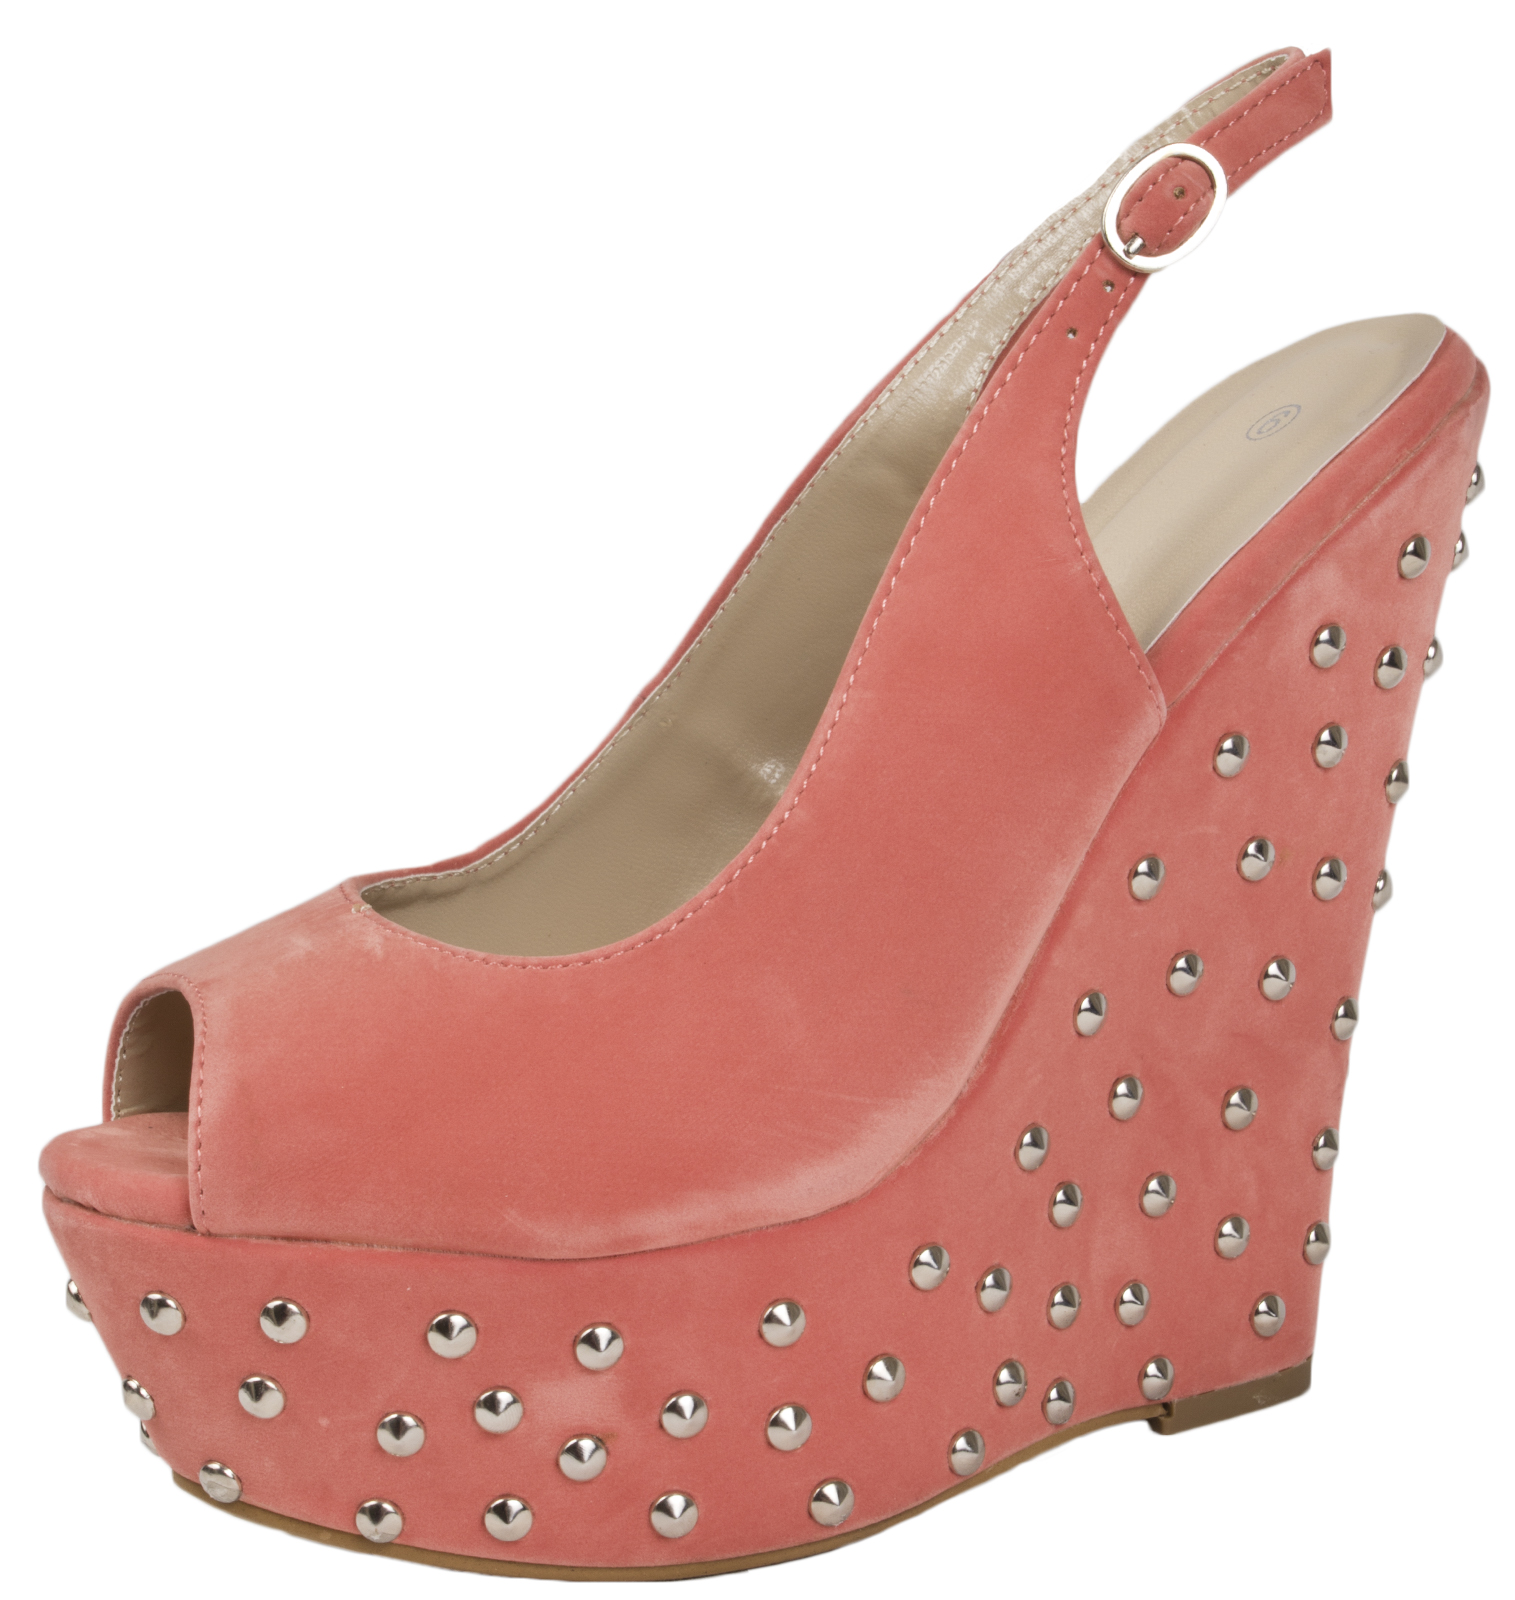 To acquire Red heels wedge with spikes picture trends